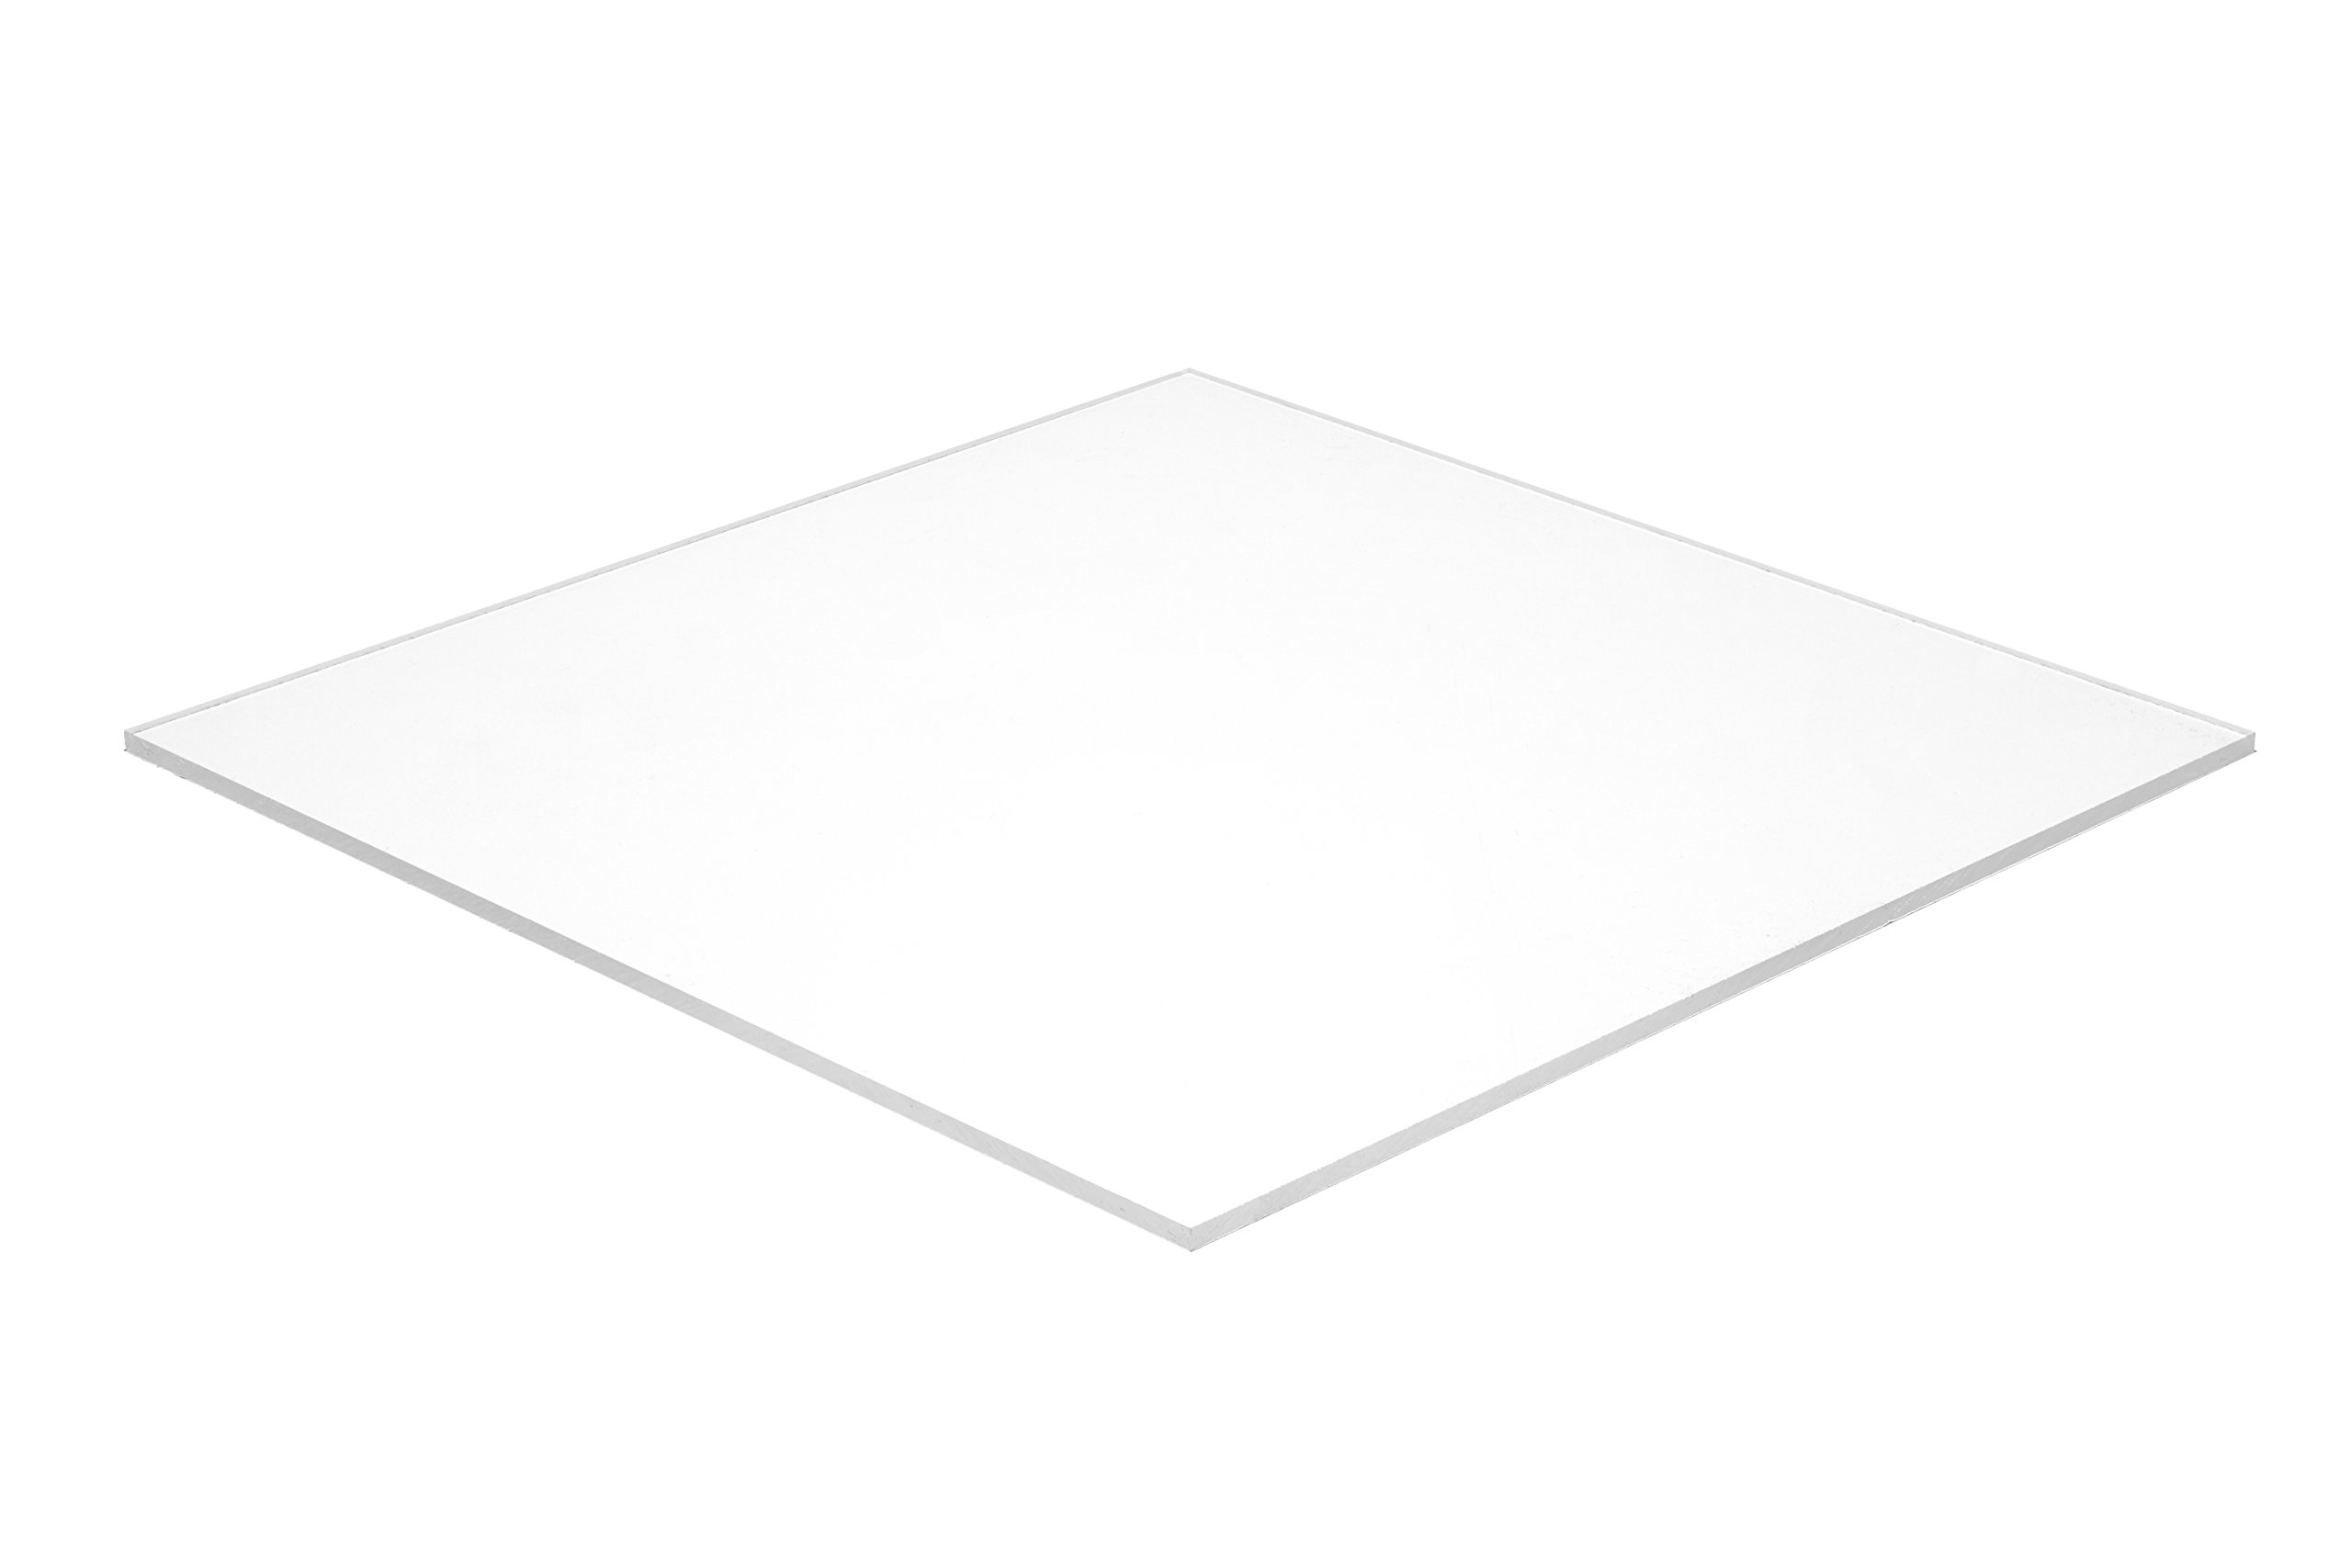 Falken Design WT3015-1-8/2436 Acrylic White Sheet, Opaque, 24'' x 36'', 1/8'' Thick